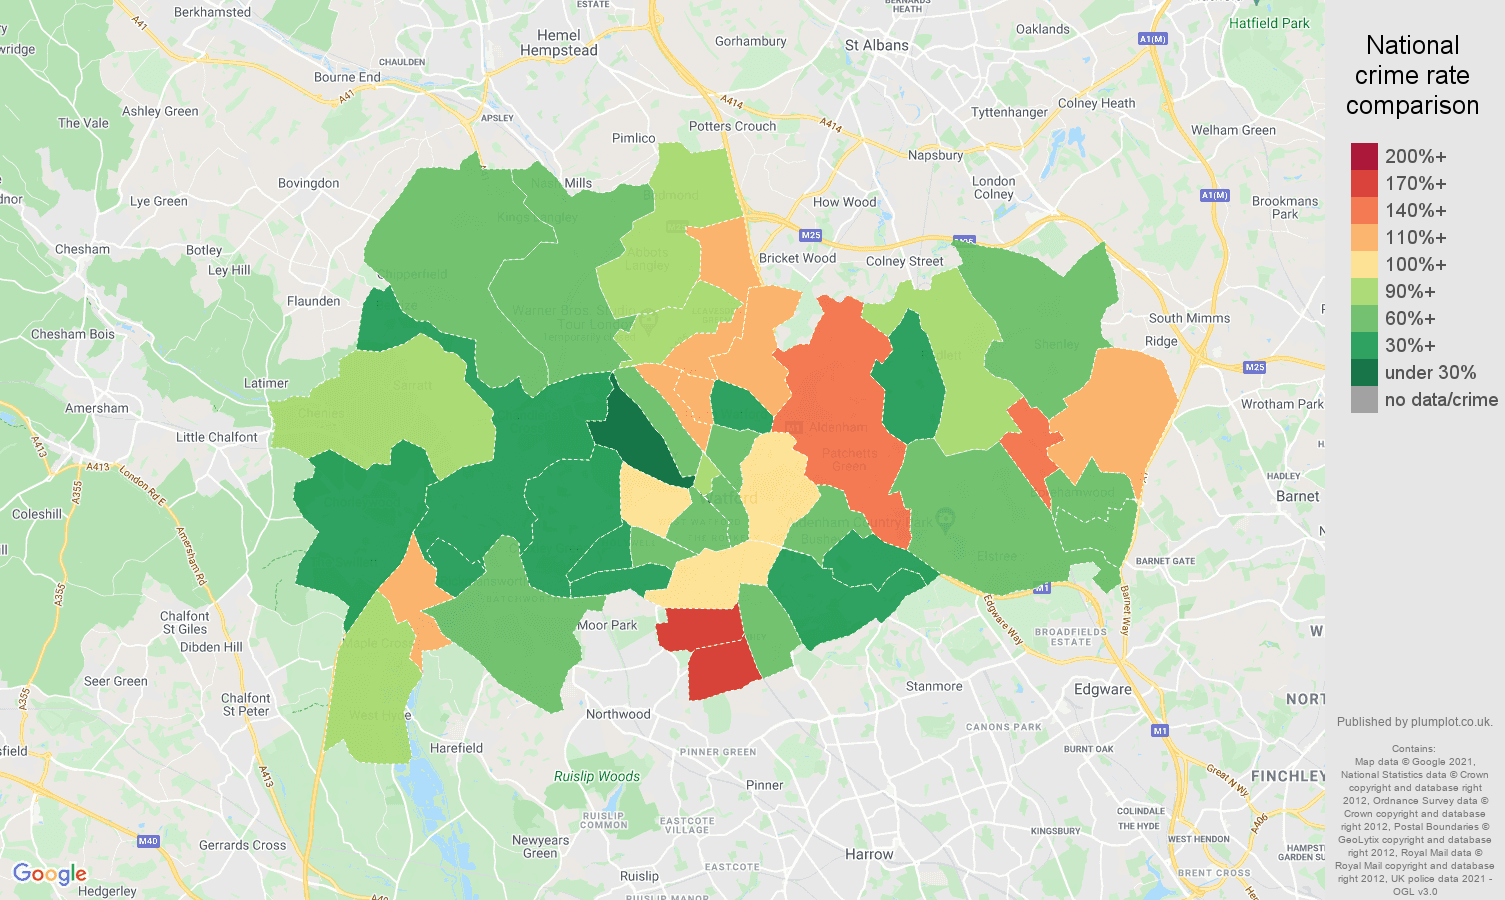 Watford criminal damage and arson crime rate comparison map